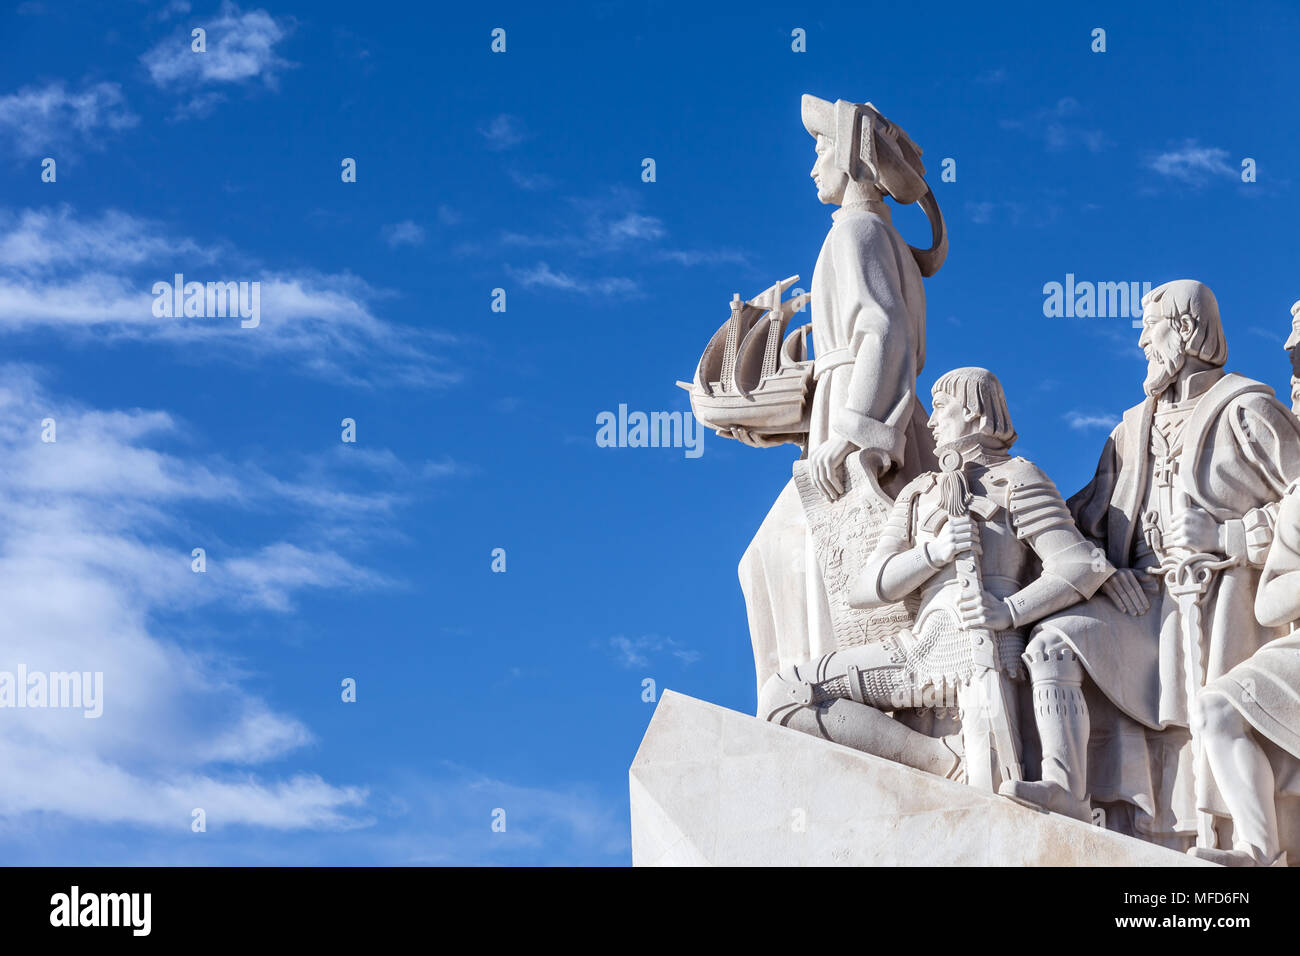 Lisbon, Portugal. Padrao dos Descobrimentos monument. Sea Discoveries Monument commemorates navigators who explored oceans and continents - Stock Image